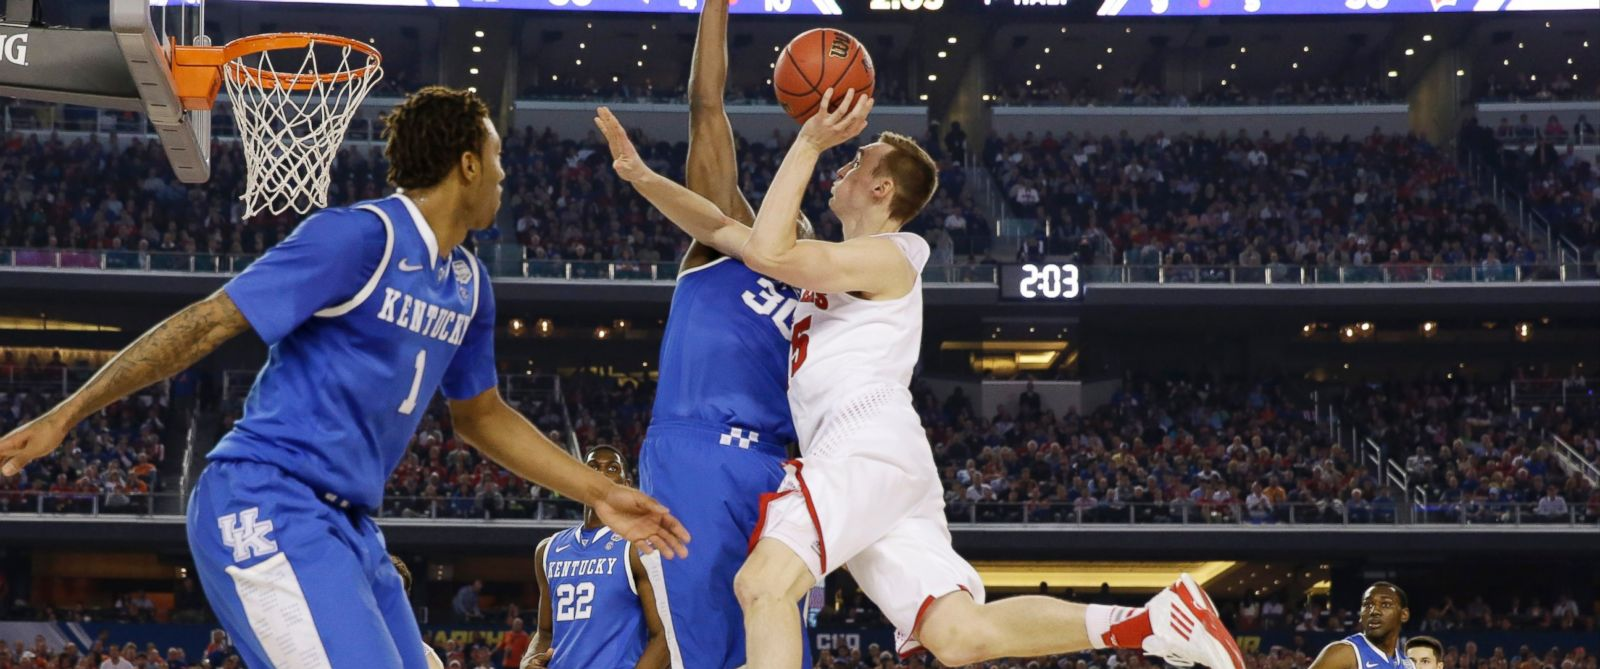 PHOTO: Wisconsin forward Sam Dekker (15) shoots against Kentucky forward Julius Randle (30) during the first half of the NCAA Final Four tournament college basketball semifinal game Saturday, April 5, 2014, in Arlington, Texas.